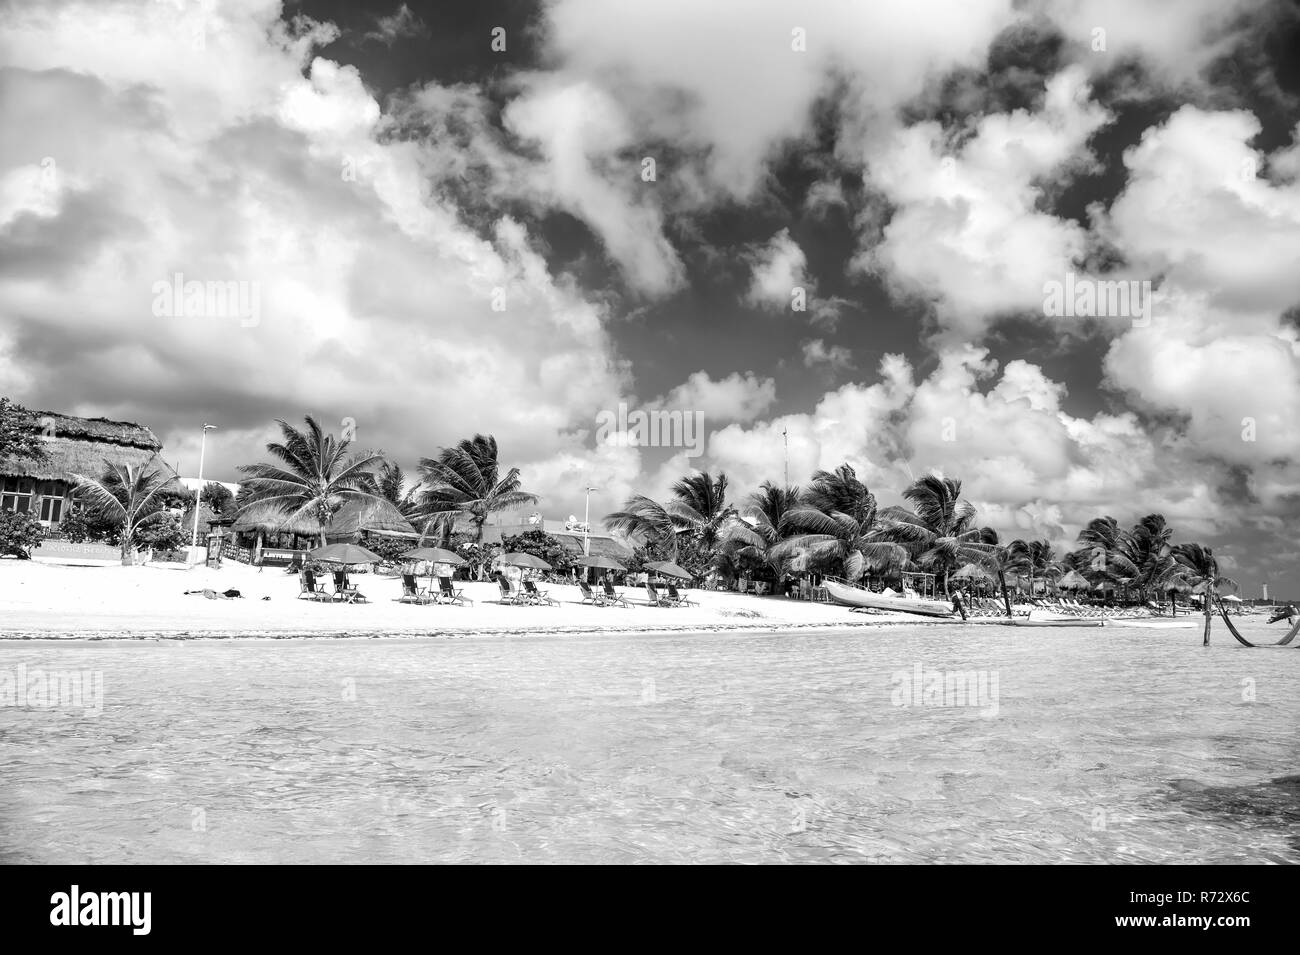 Beach with green palm trees, umbrellas on sand. Sea or ocean water at Costa Maya, Mexico. Tropical resort on sunny day on cloudy blue sky. Summer vacation, travelling concept. - Stock Image